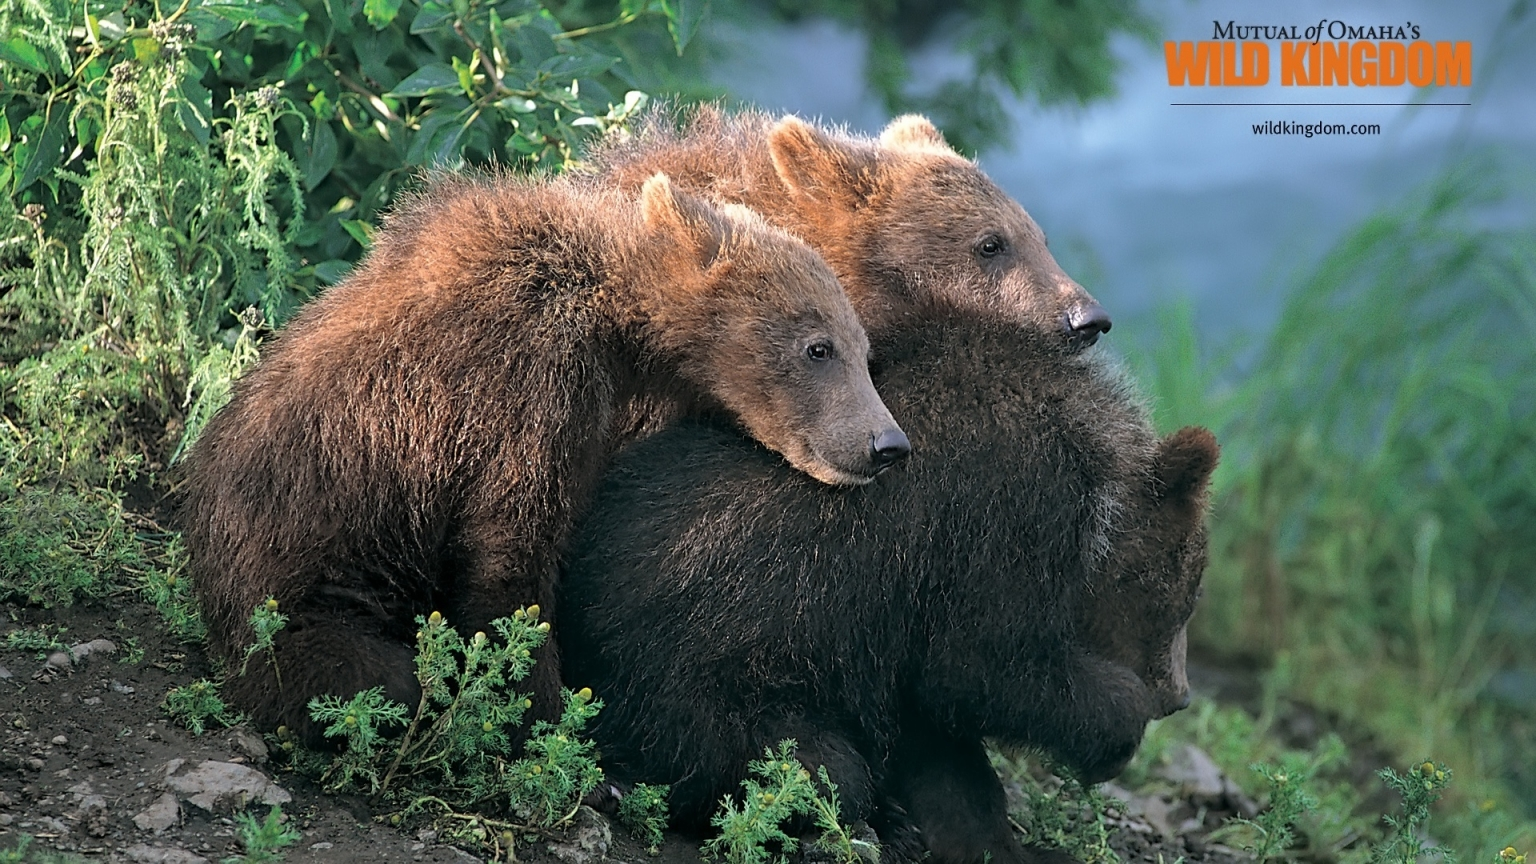 Brown Bears for 1536 x 864 HDTV resolution